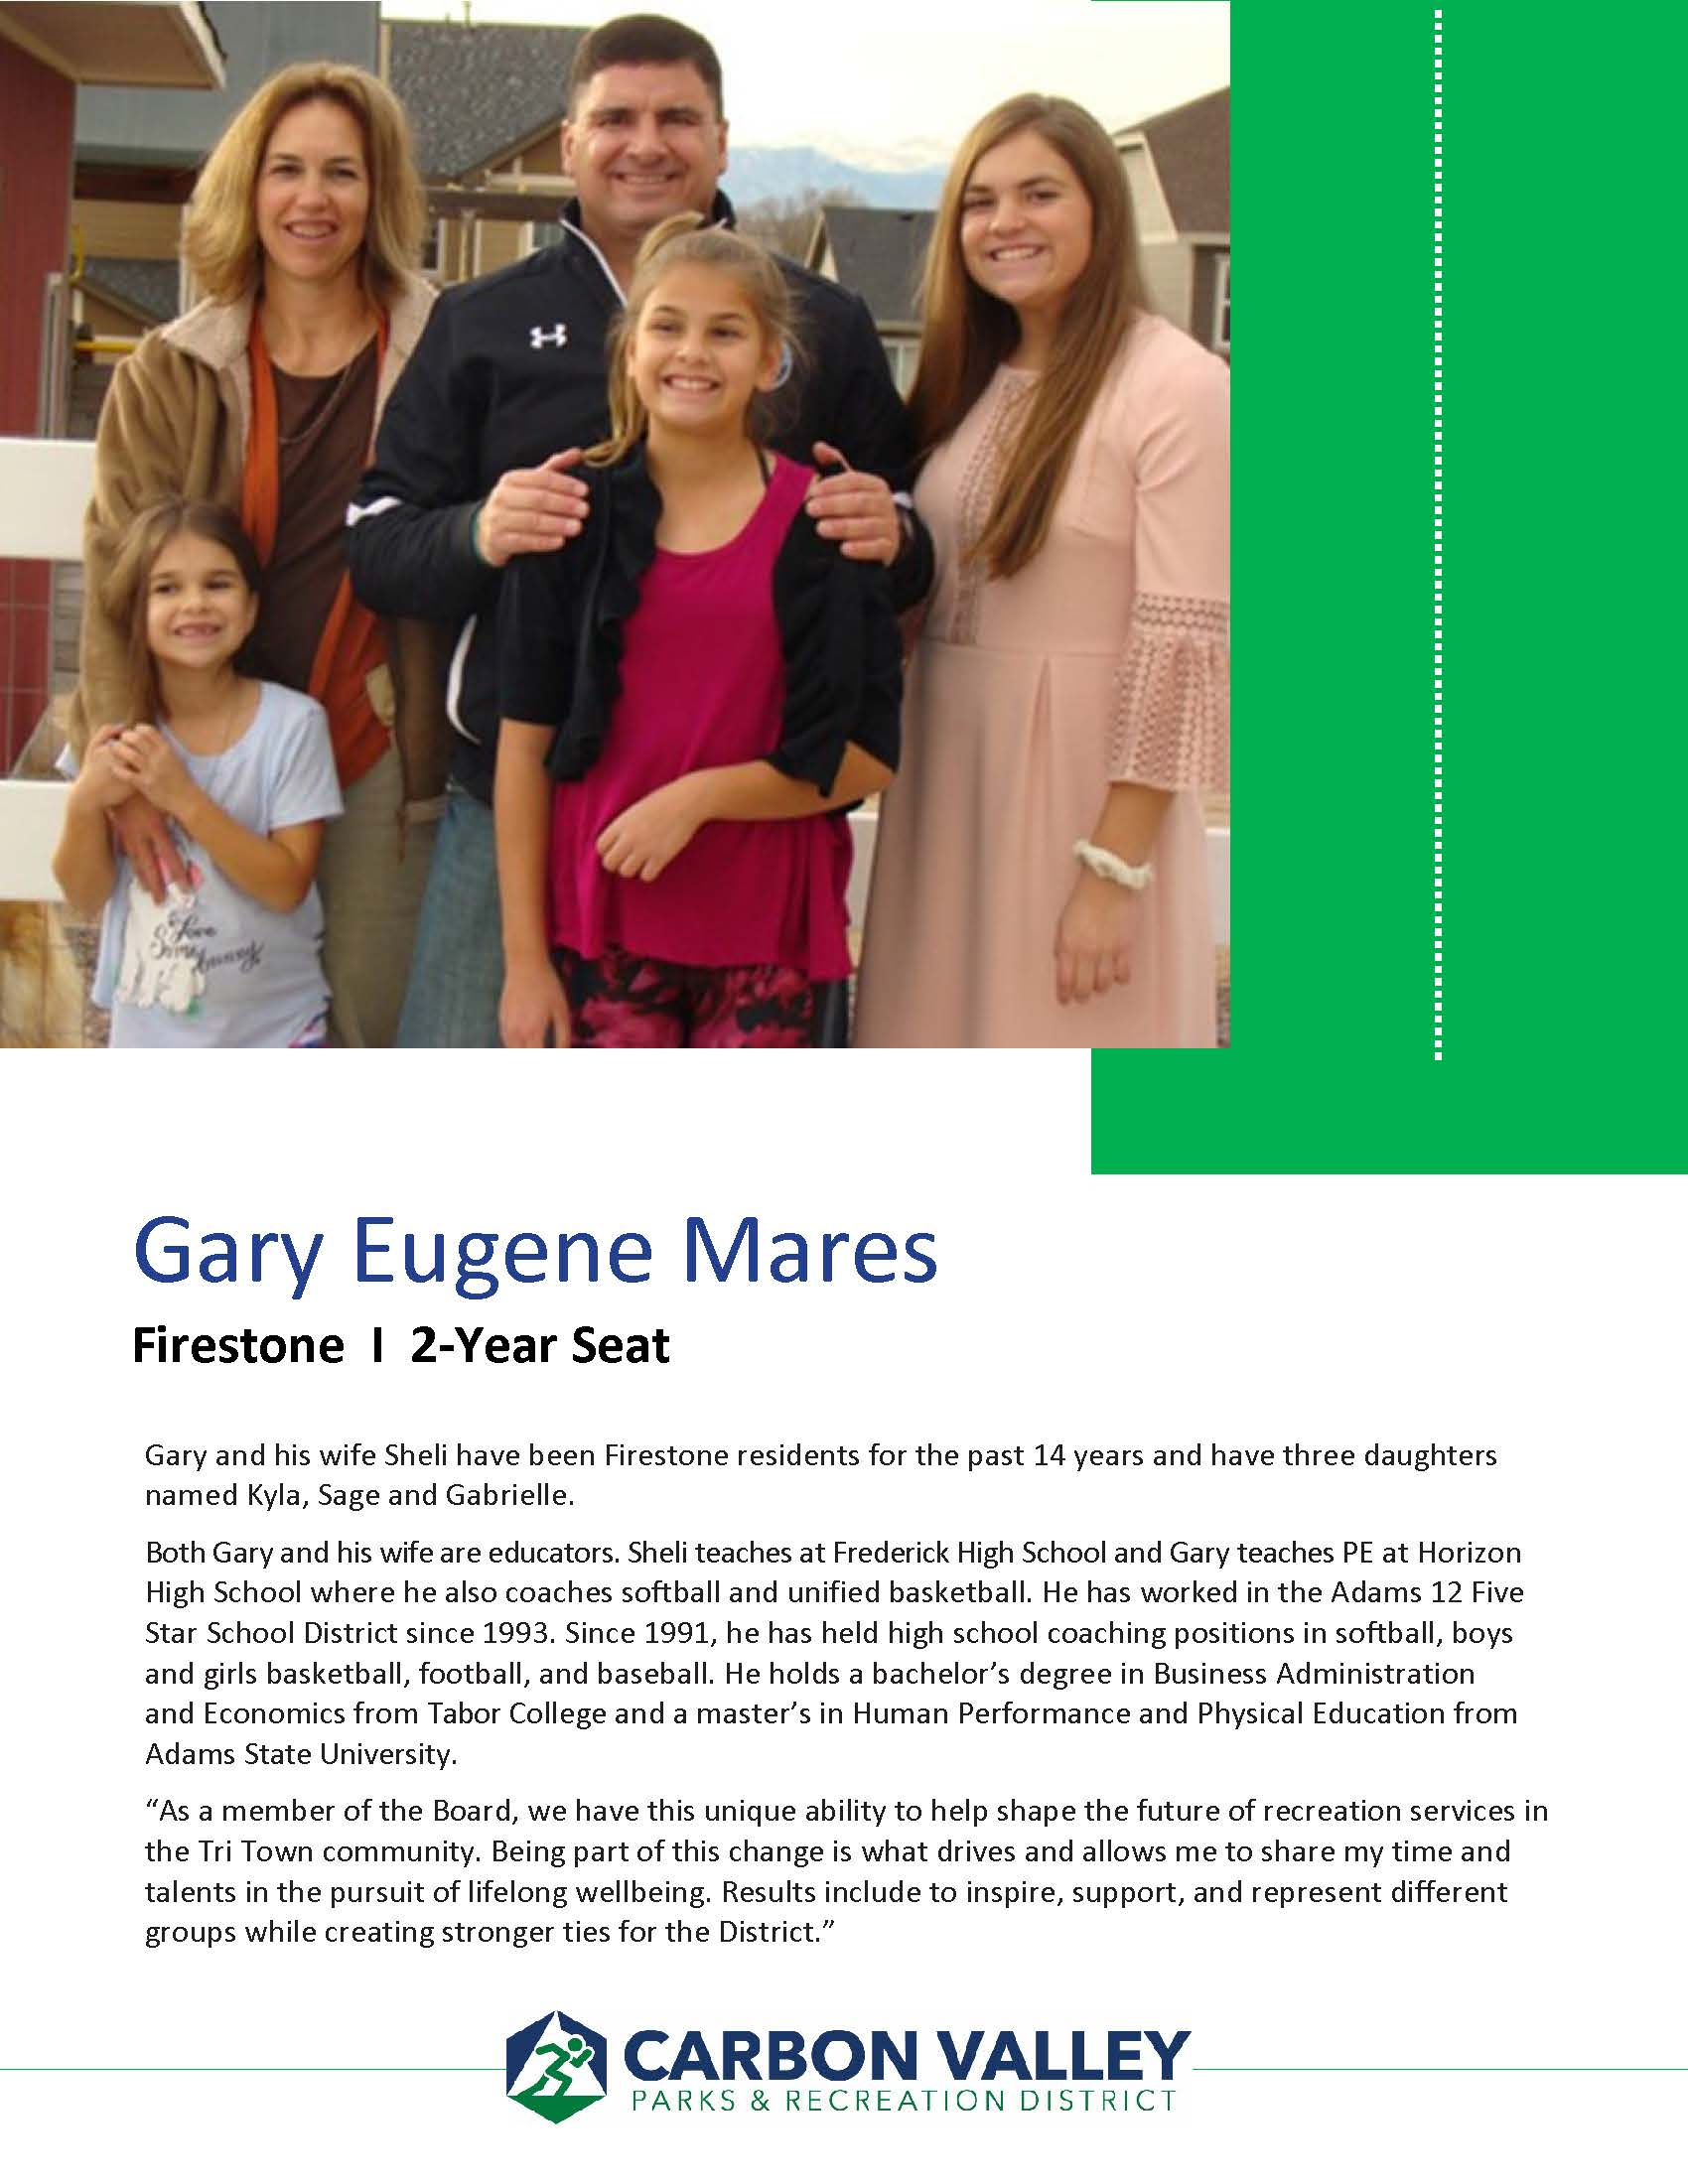 Gary Mares